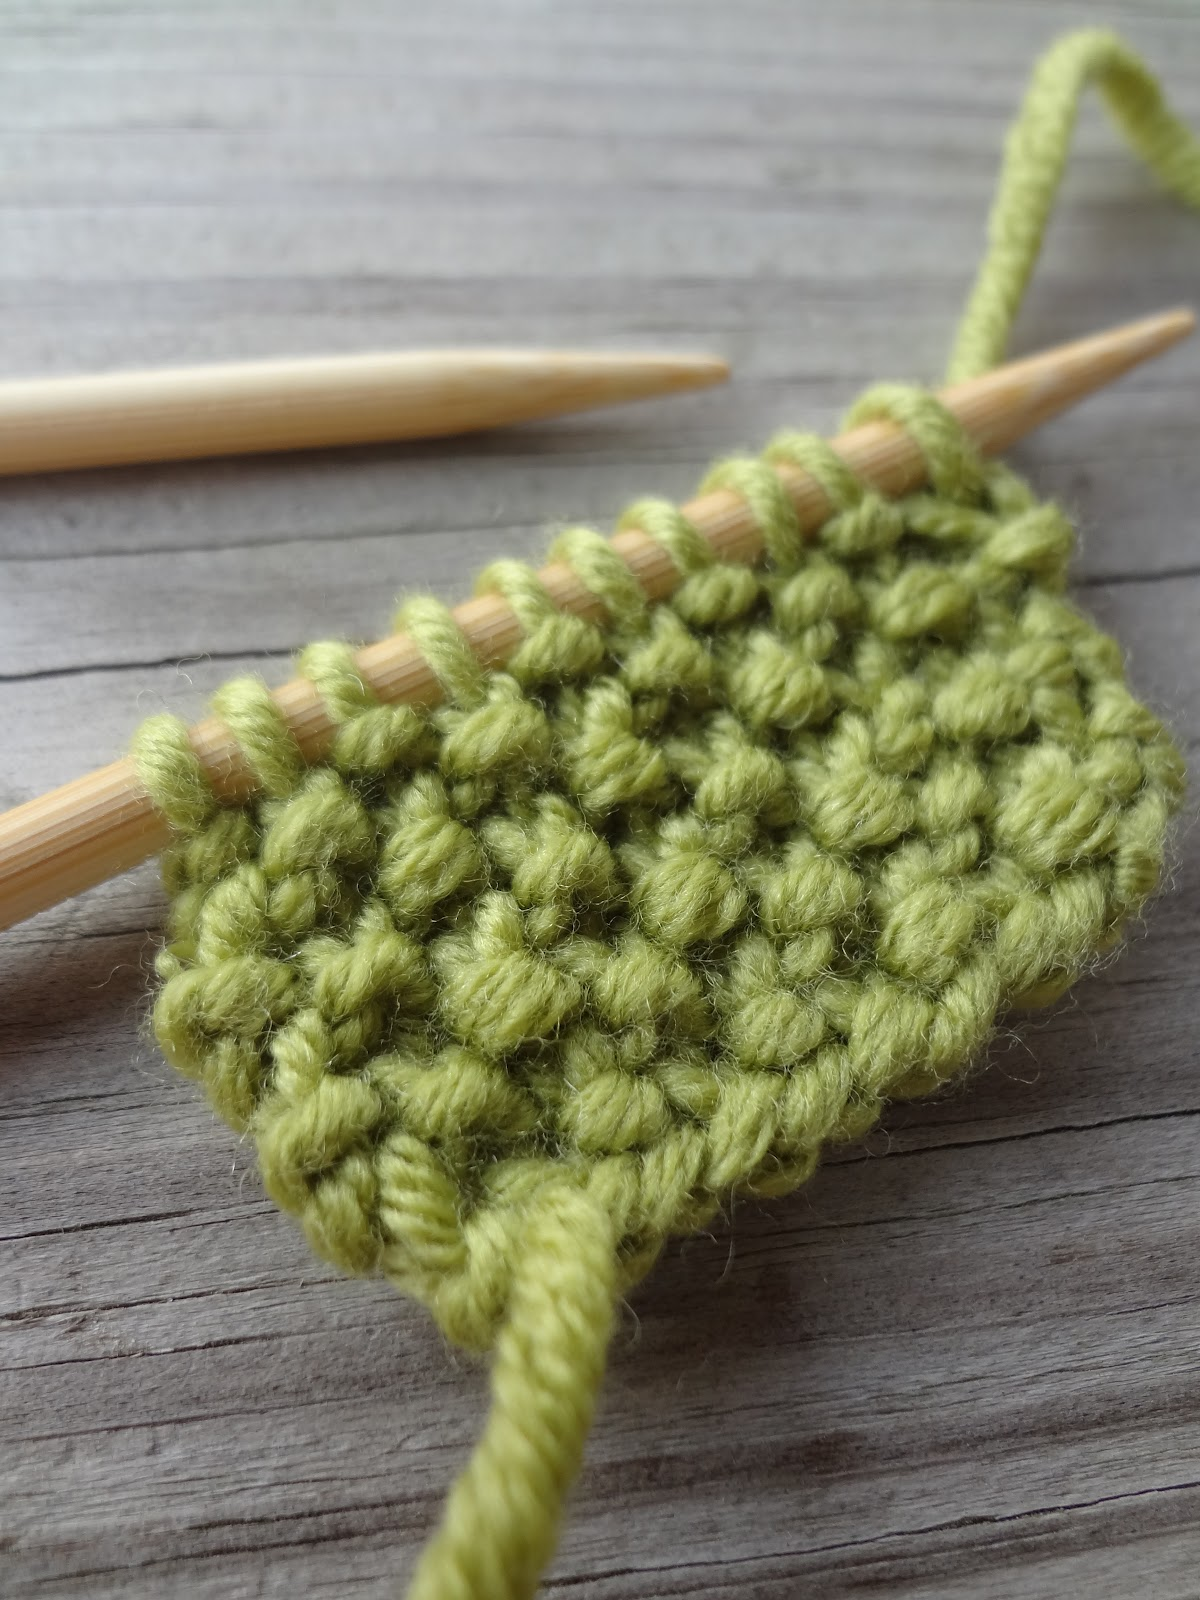 Knitting Stitches Seed Stitch : Fiber Flux: How to Knit Seed Stitch